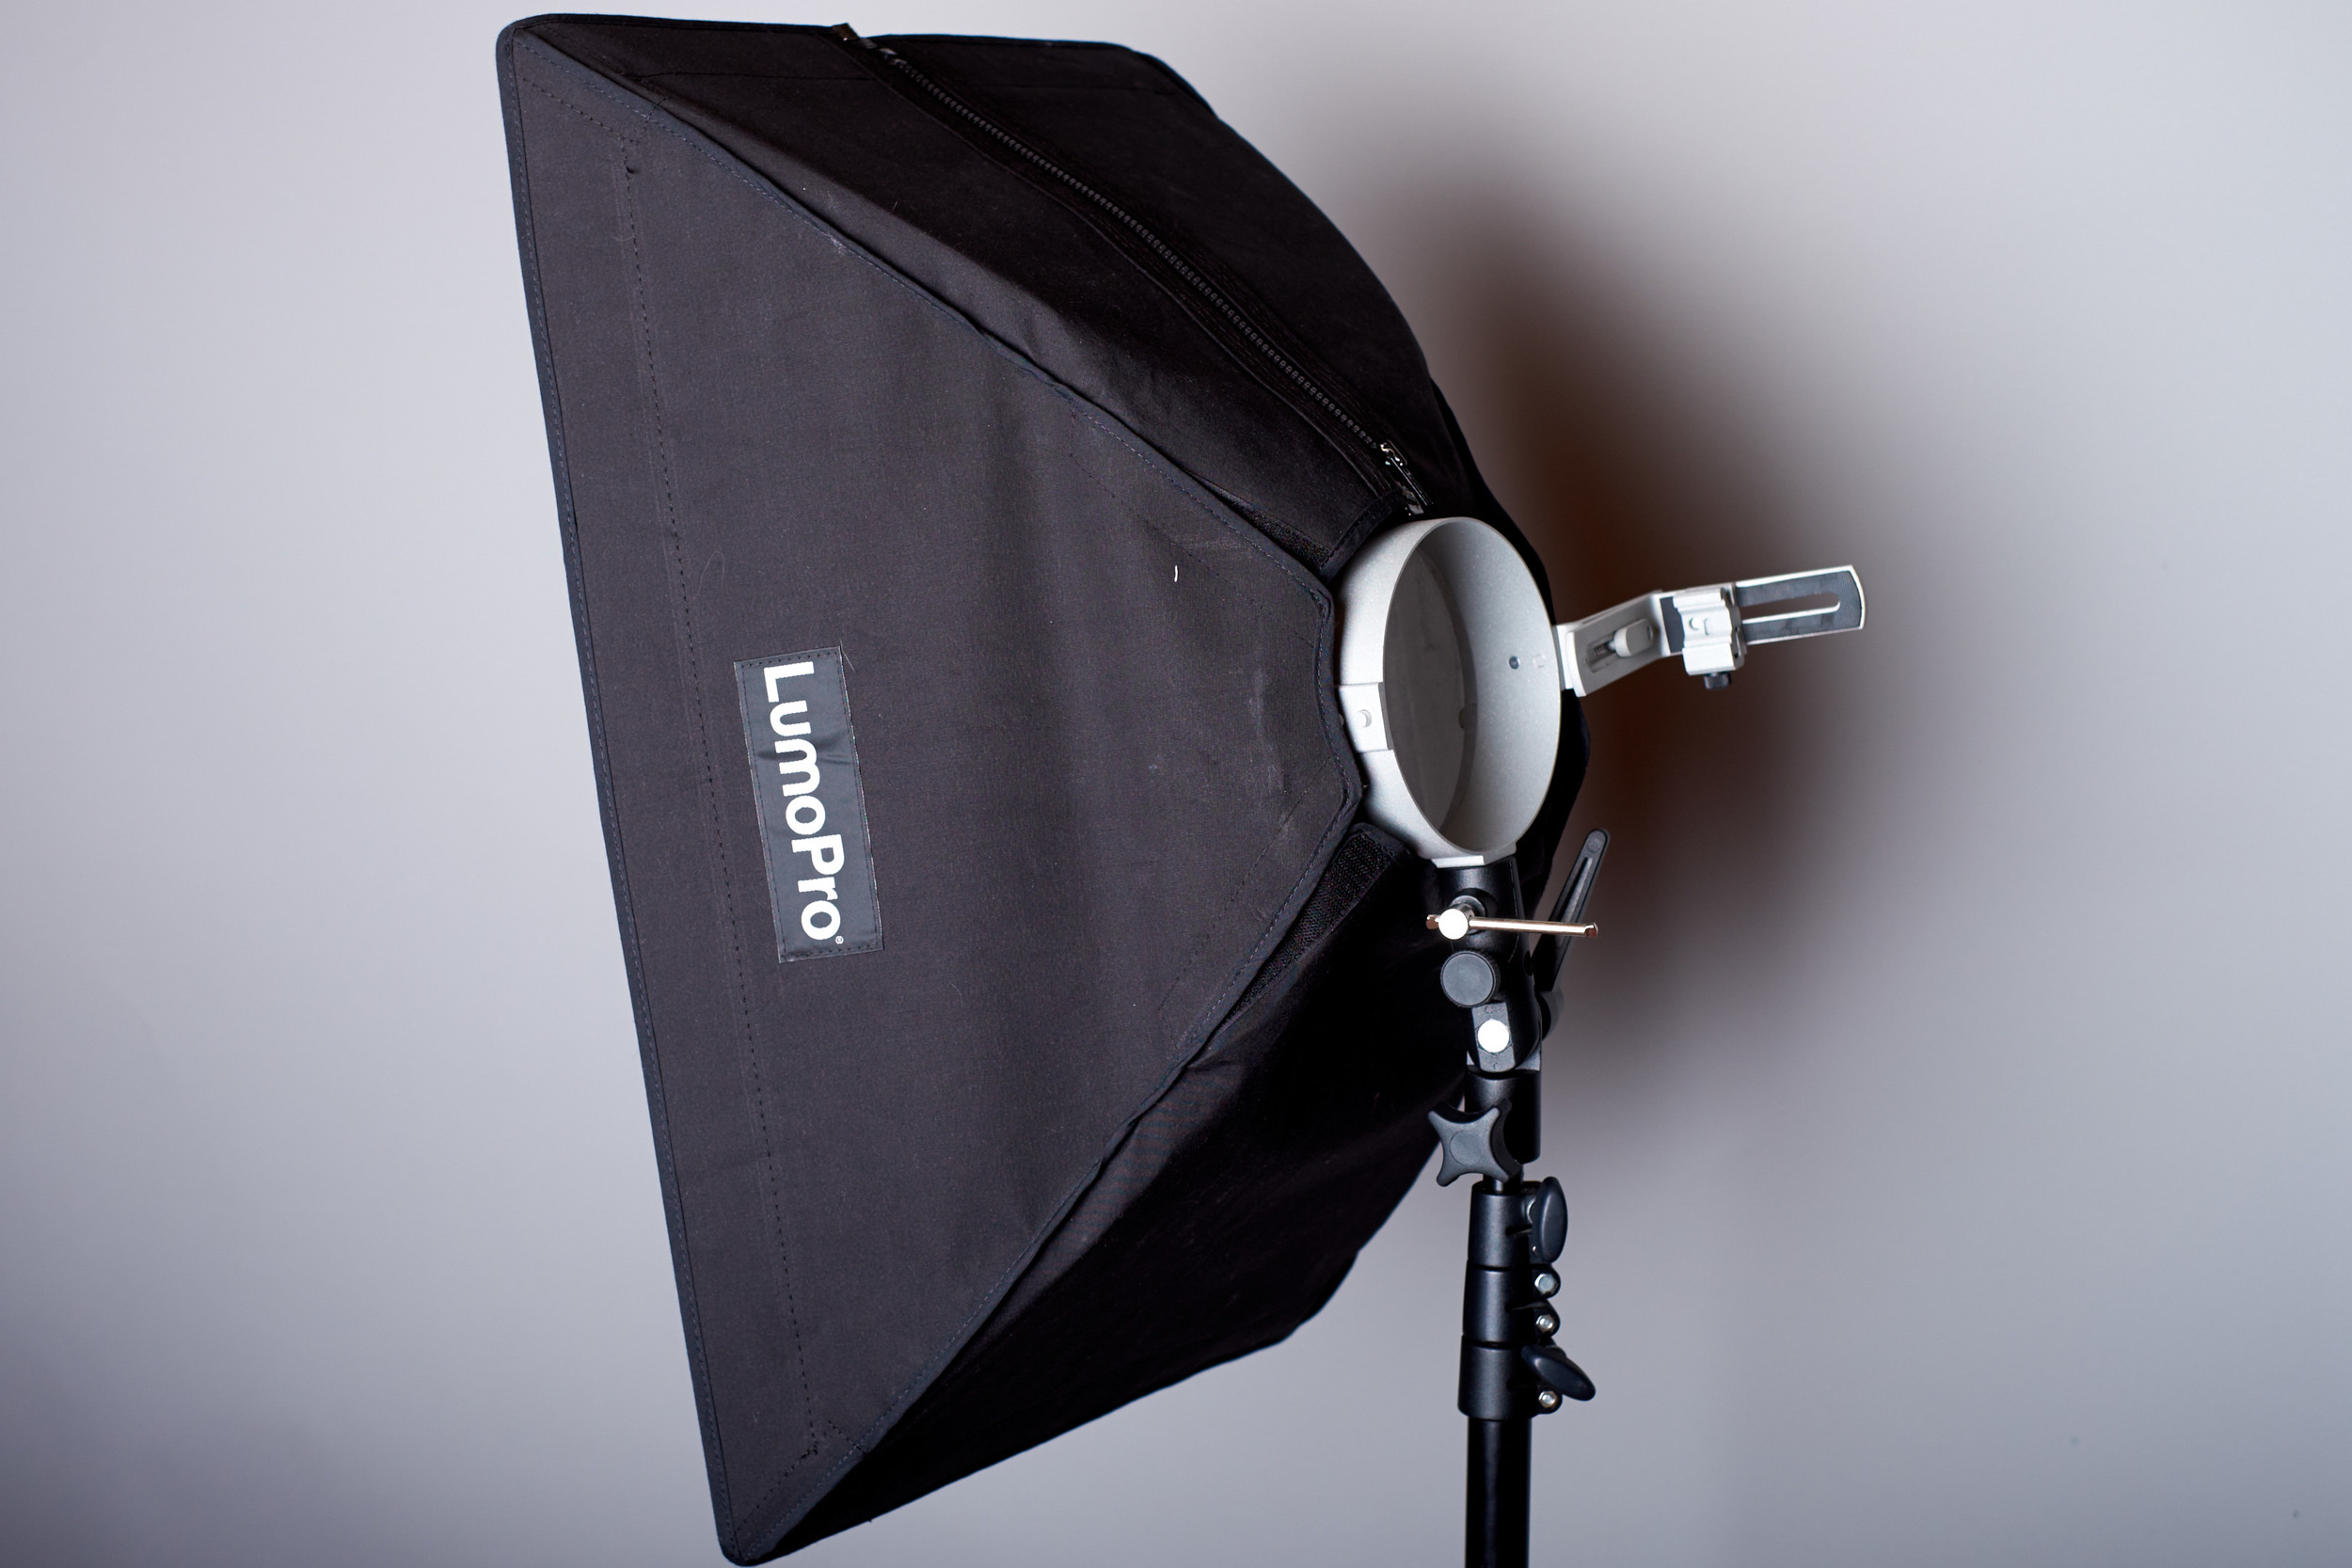 You may also need a light modifier, if you so desire. Shown here is the LumoPro Small Softbox.